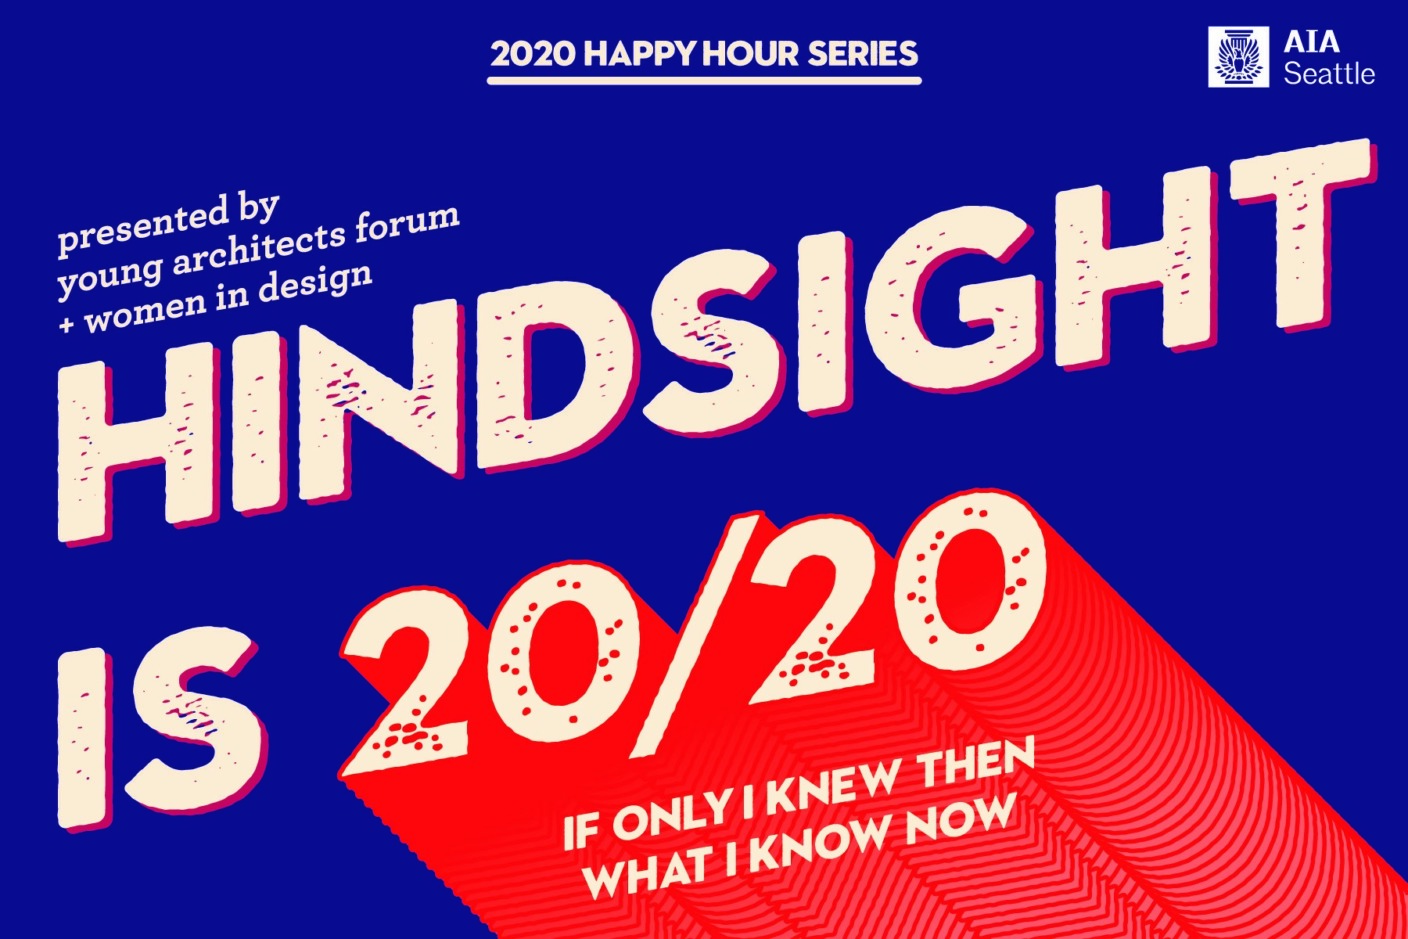 Hindsight Is 20/20 - Women In Design & Young Architects Forum 2020 Happy Hour series